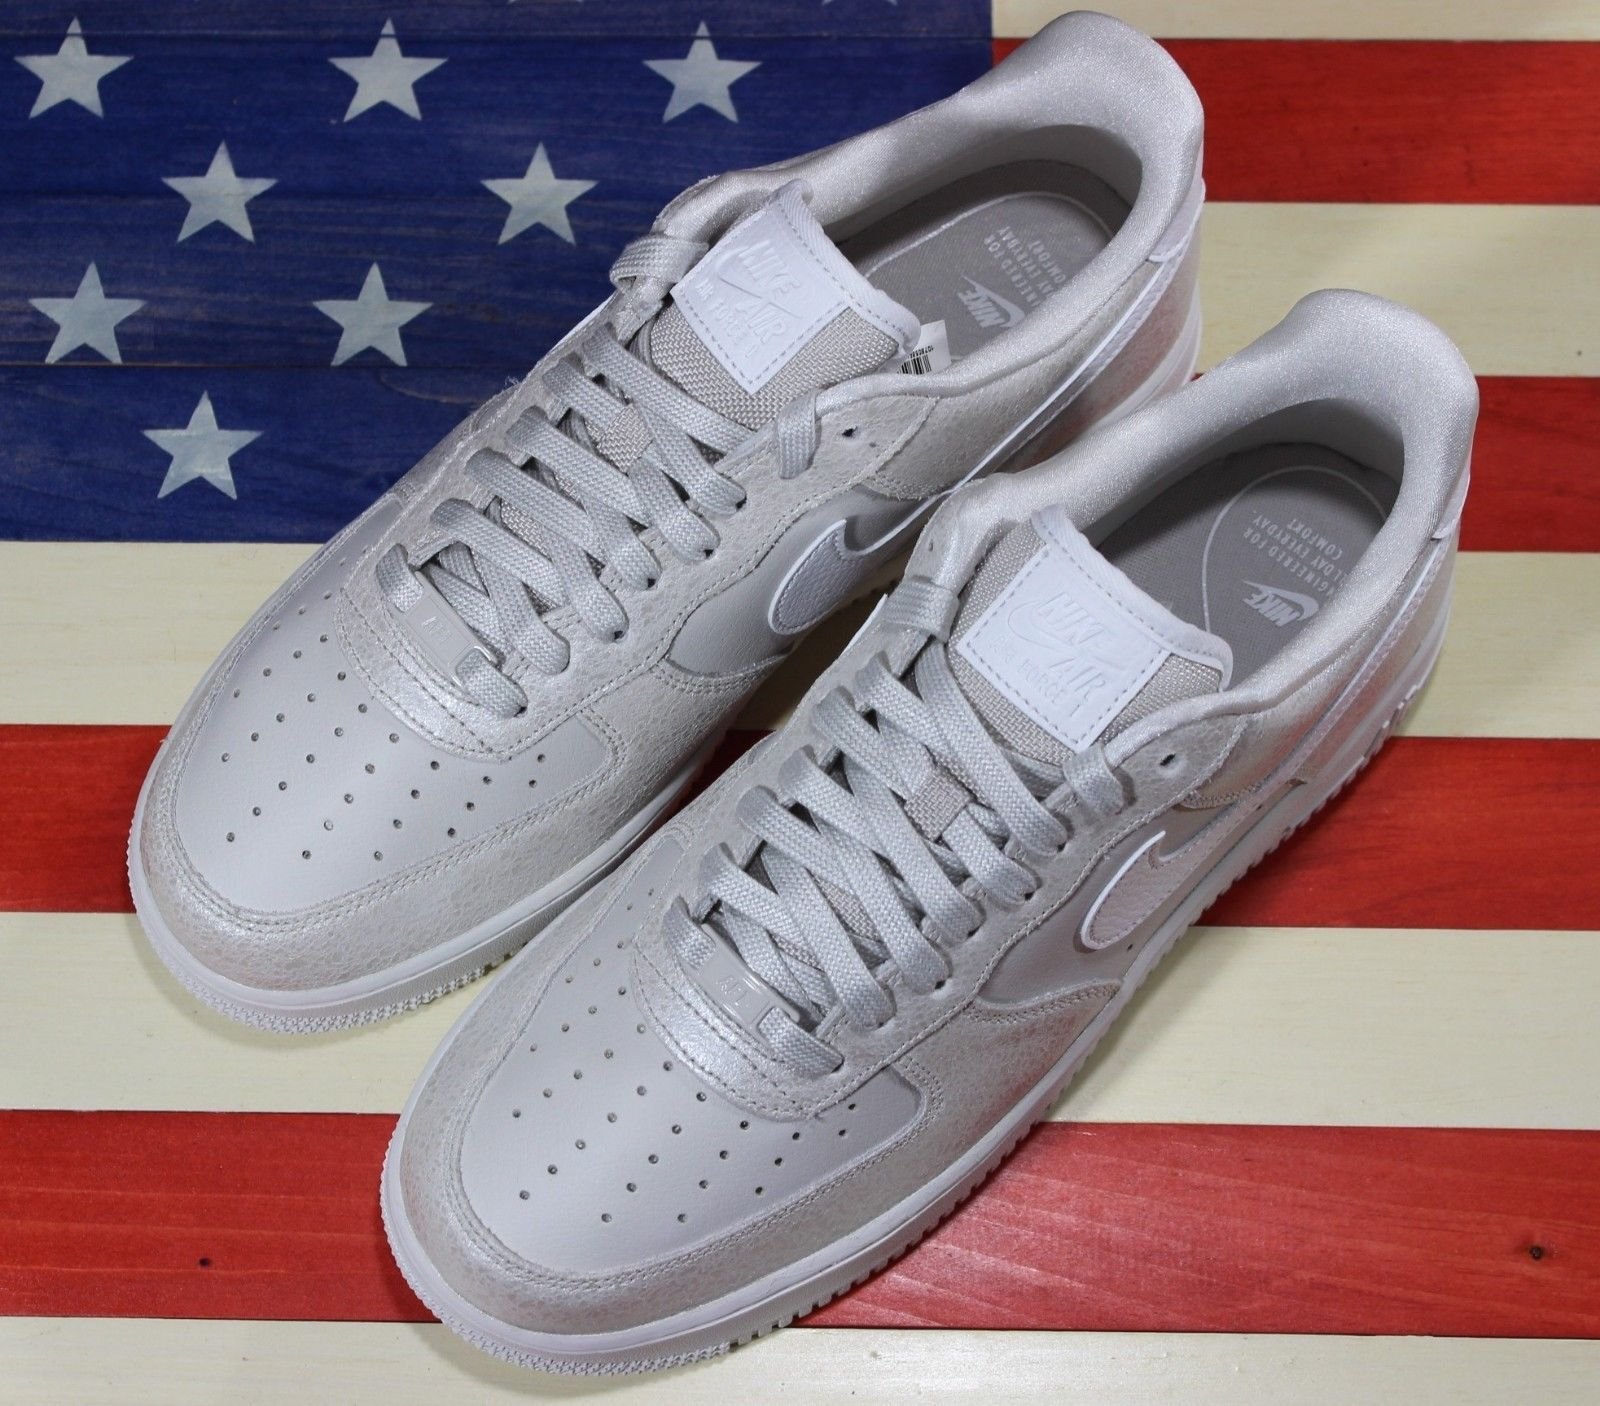 new arrival 269a5 3bcab Nike Air Force 1 One Low 07 Basketball Shoes Turquoise  896185-004  Women s